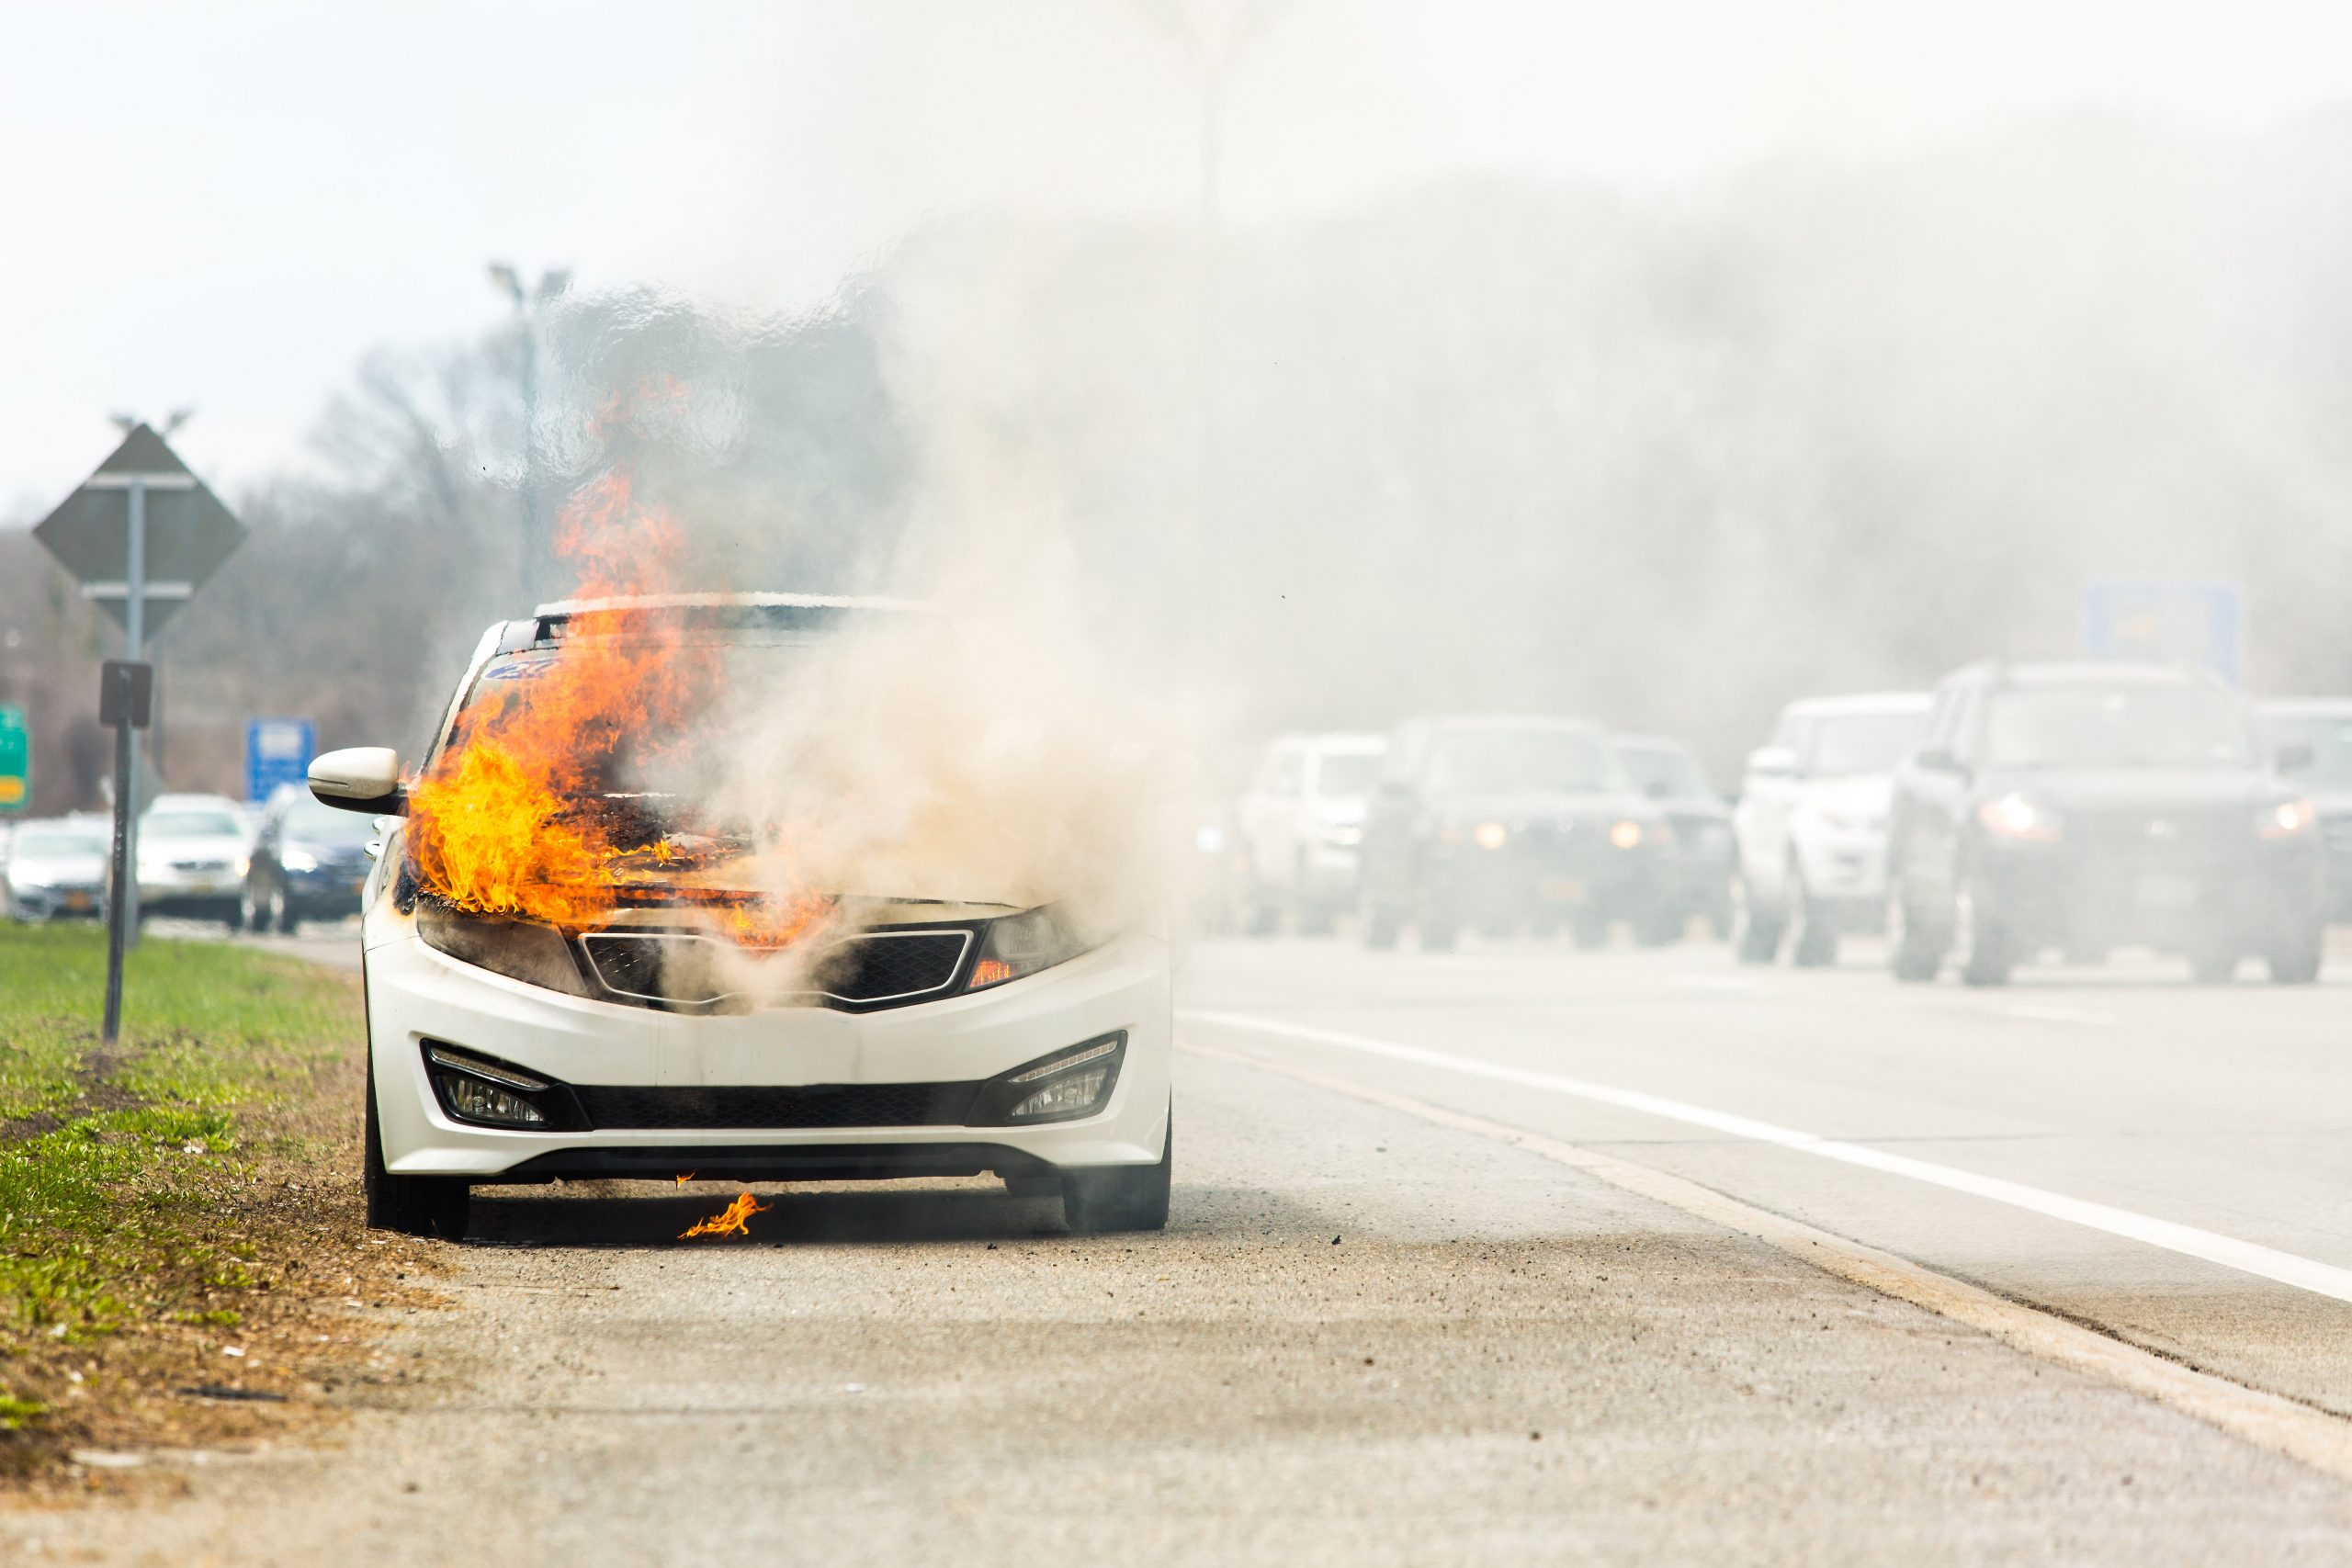 Will My Insurance Cover Car Damage Caused By Riots?